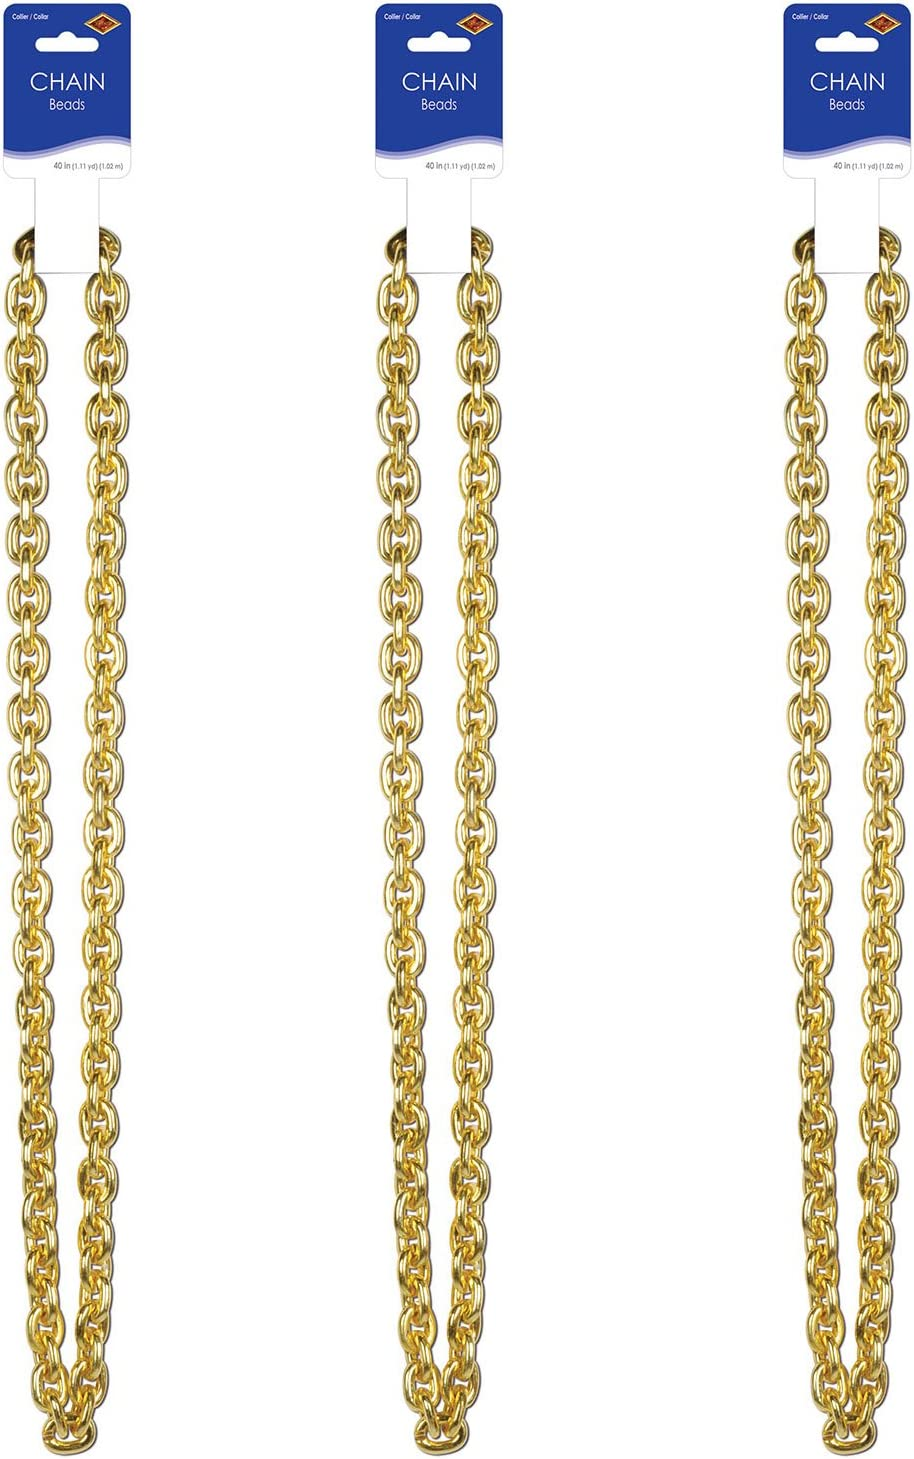 Chain Beads Gold Party...